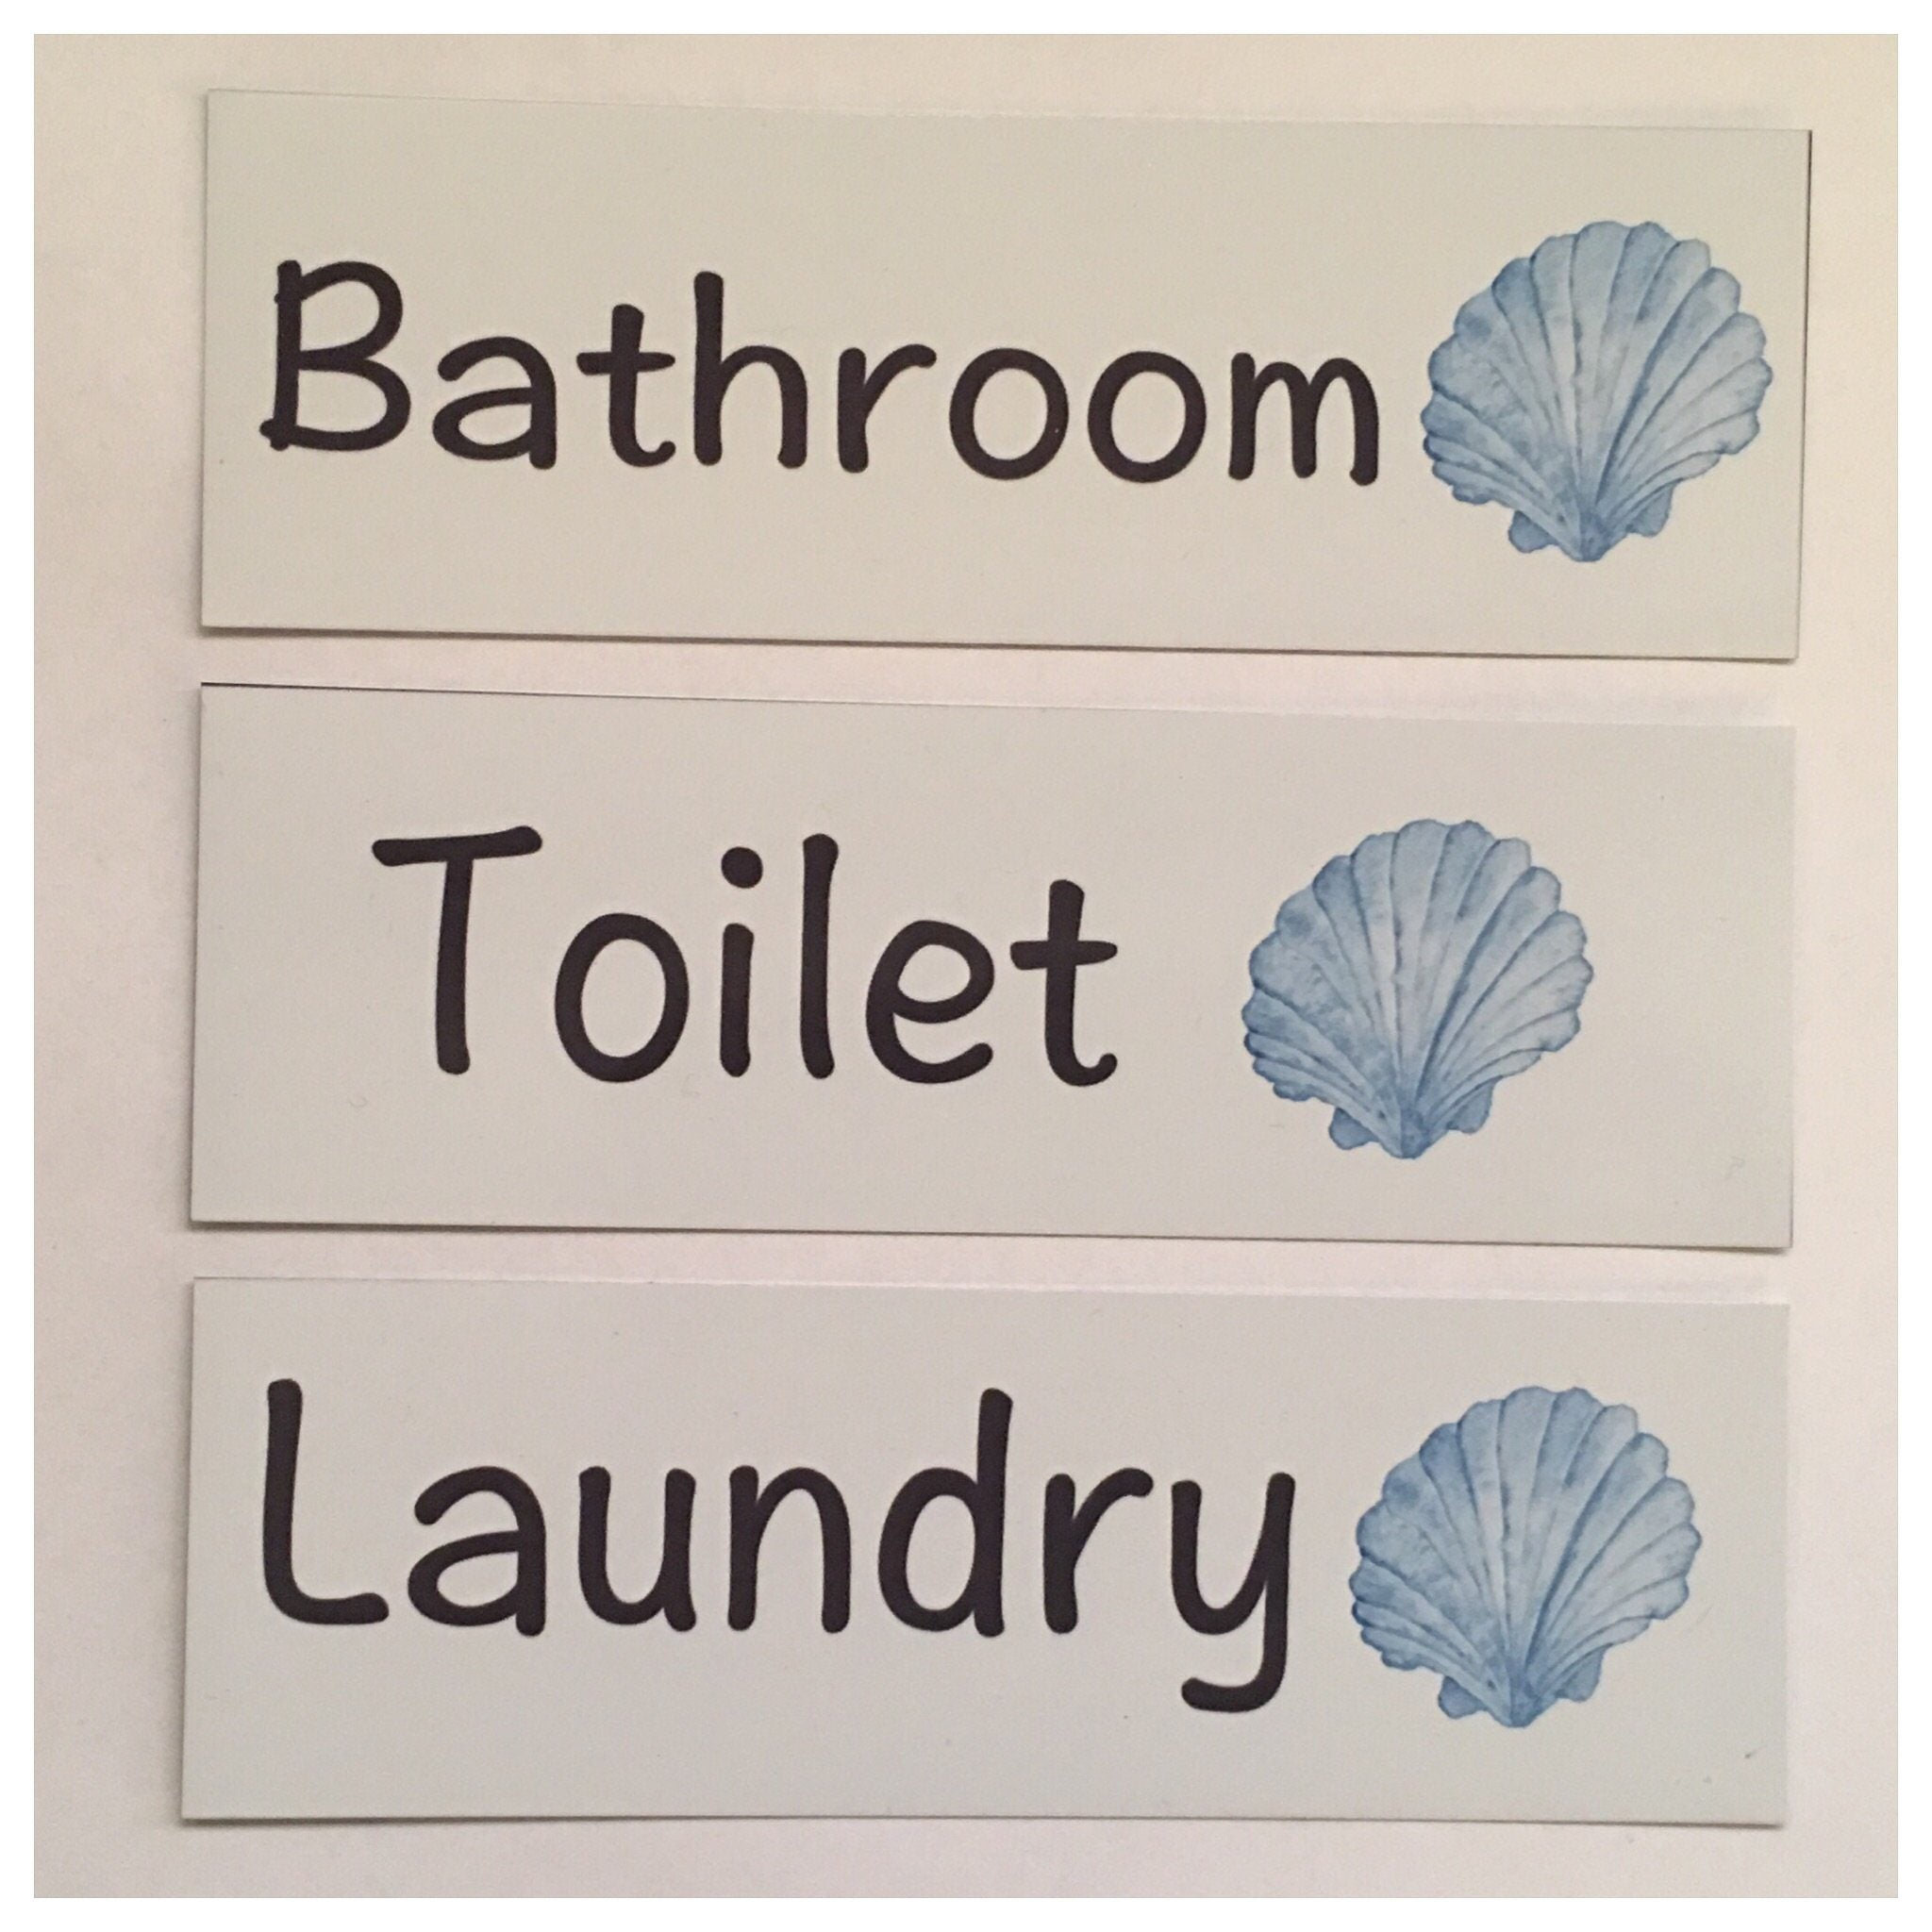 Shell Beach Blue Door Room Sign Toilet Laundry Bathroom - The Renmy Store